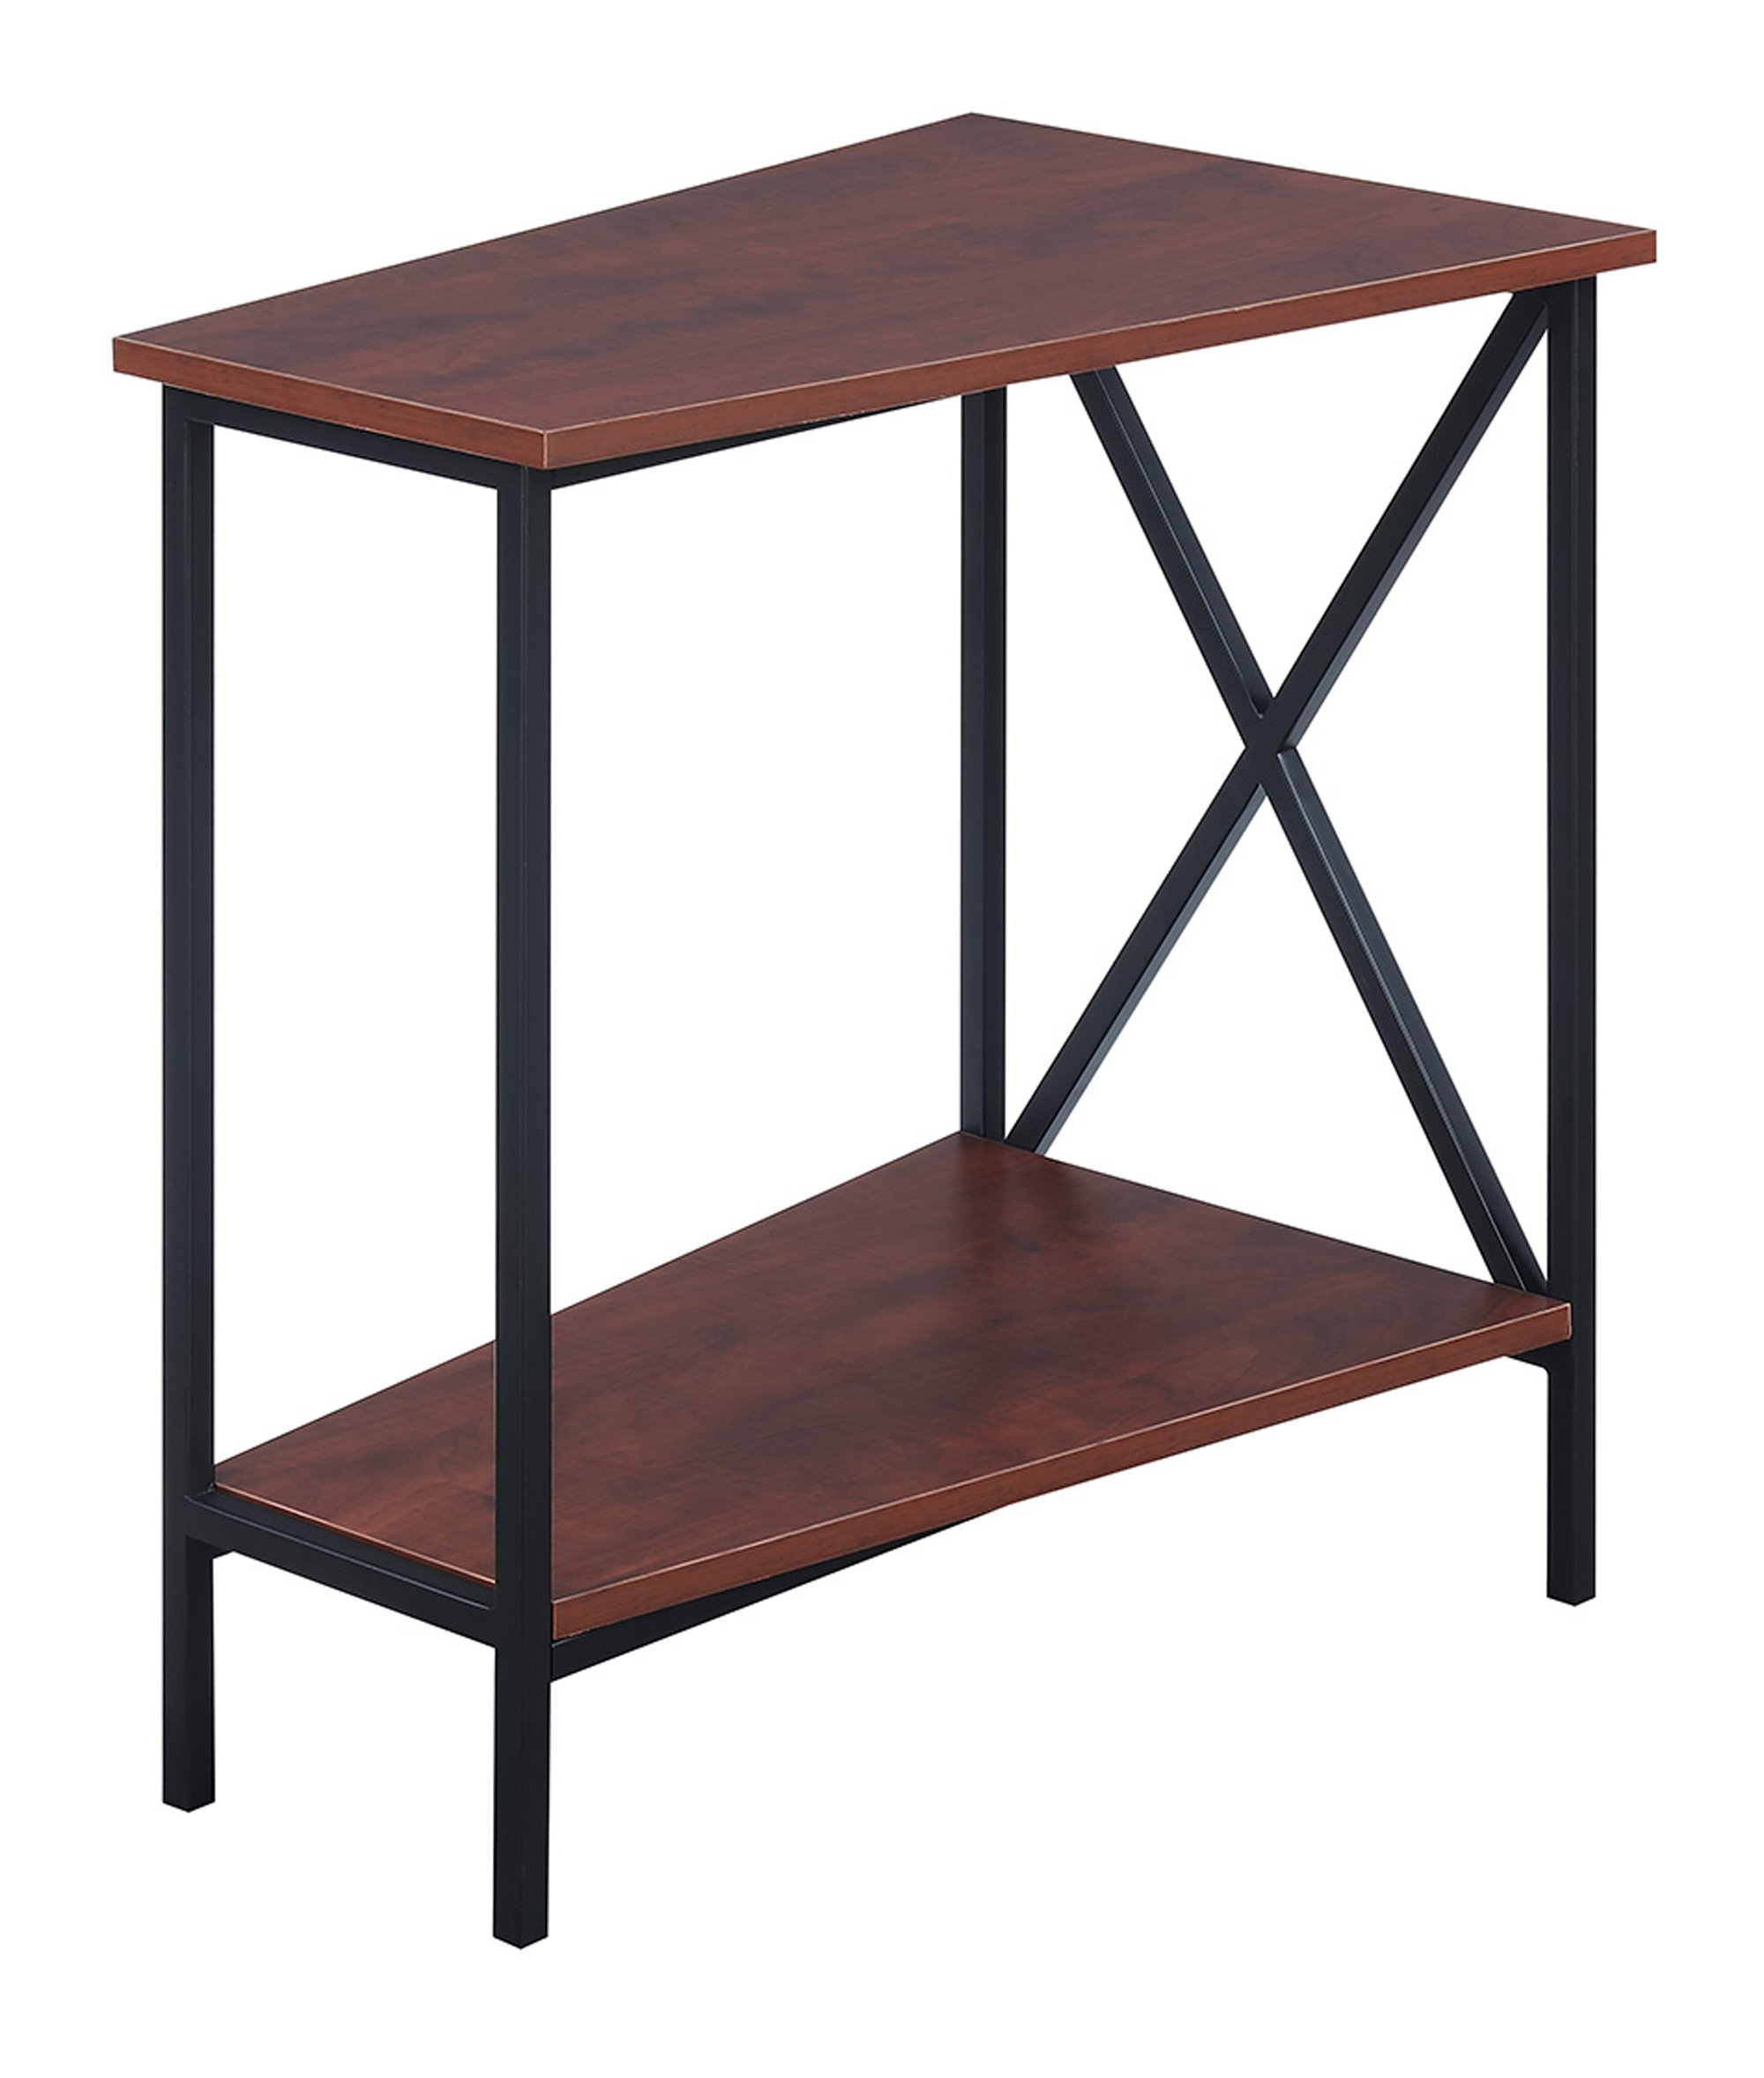 Convenience Concepts Tucson Wedge End Table, Black / Cherry by Convenience Concepts Tucson Wedge End Table, Black / Cherry (Image #3)